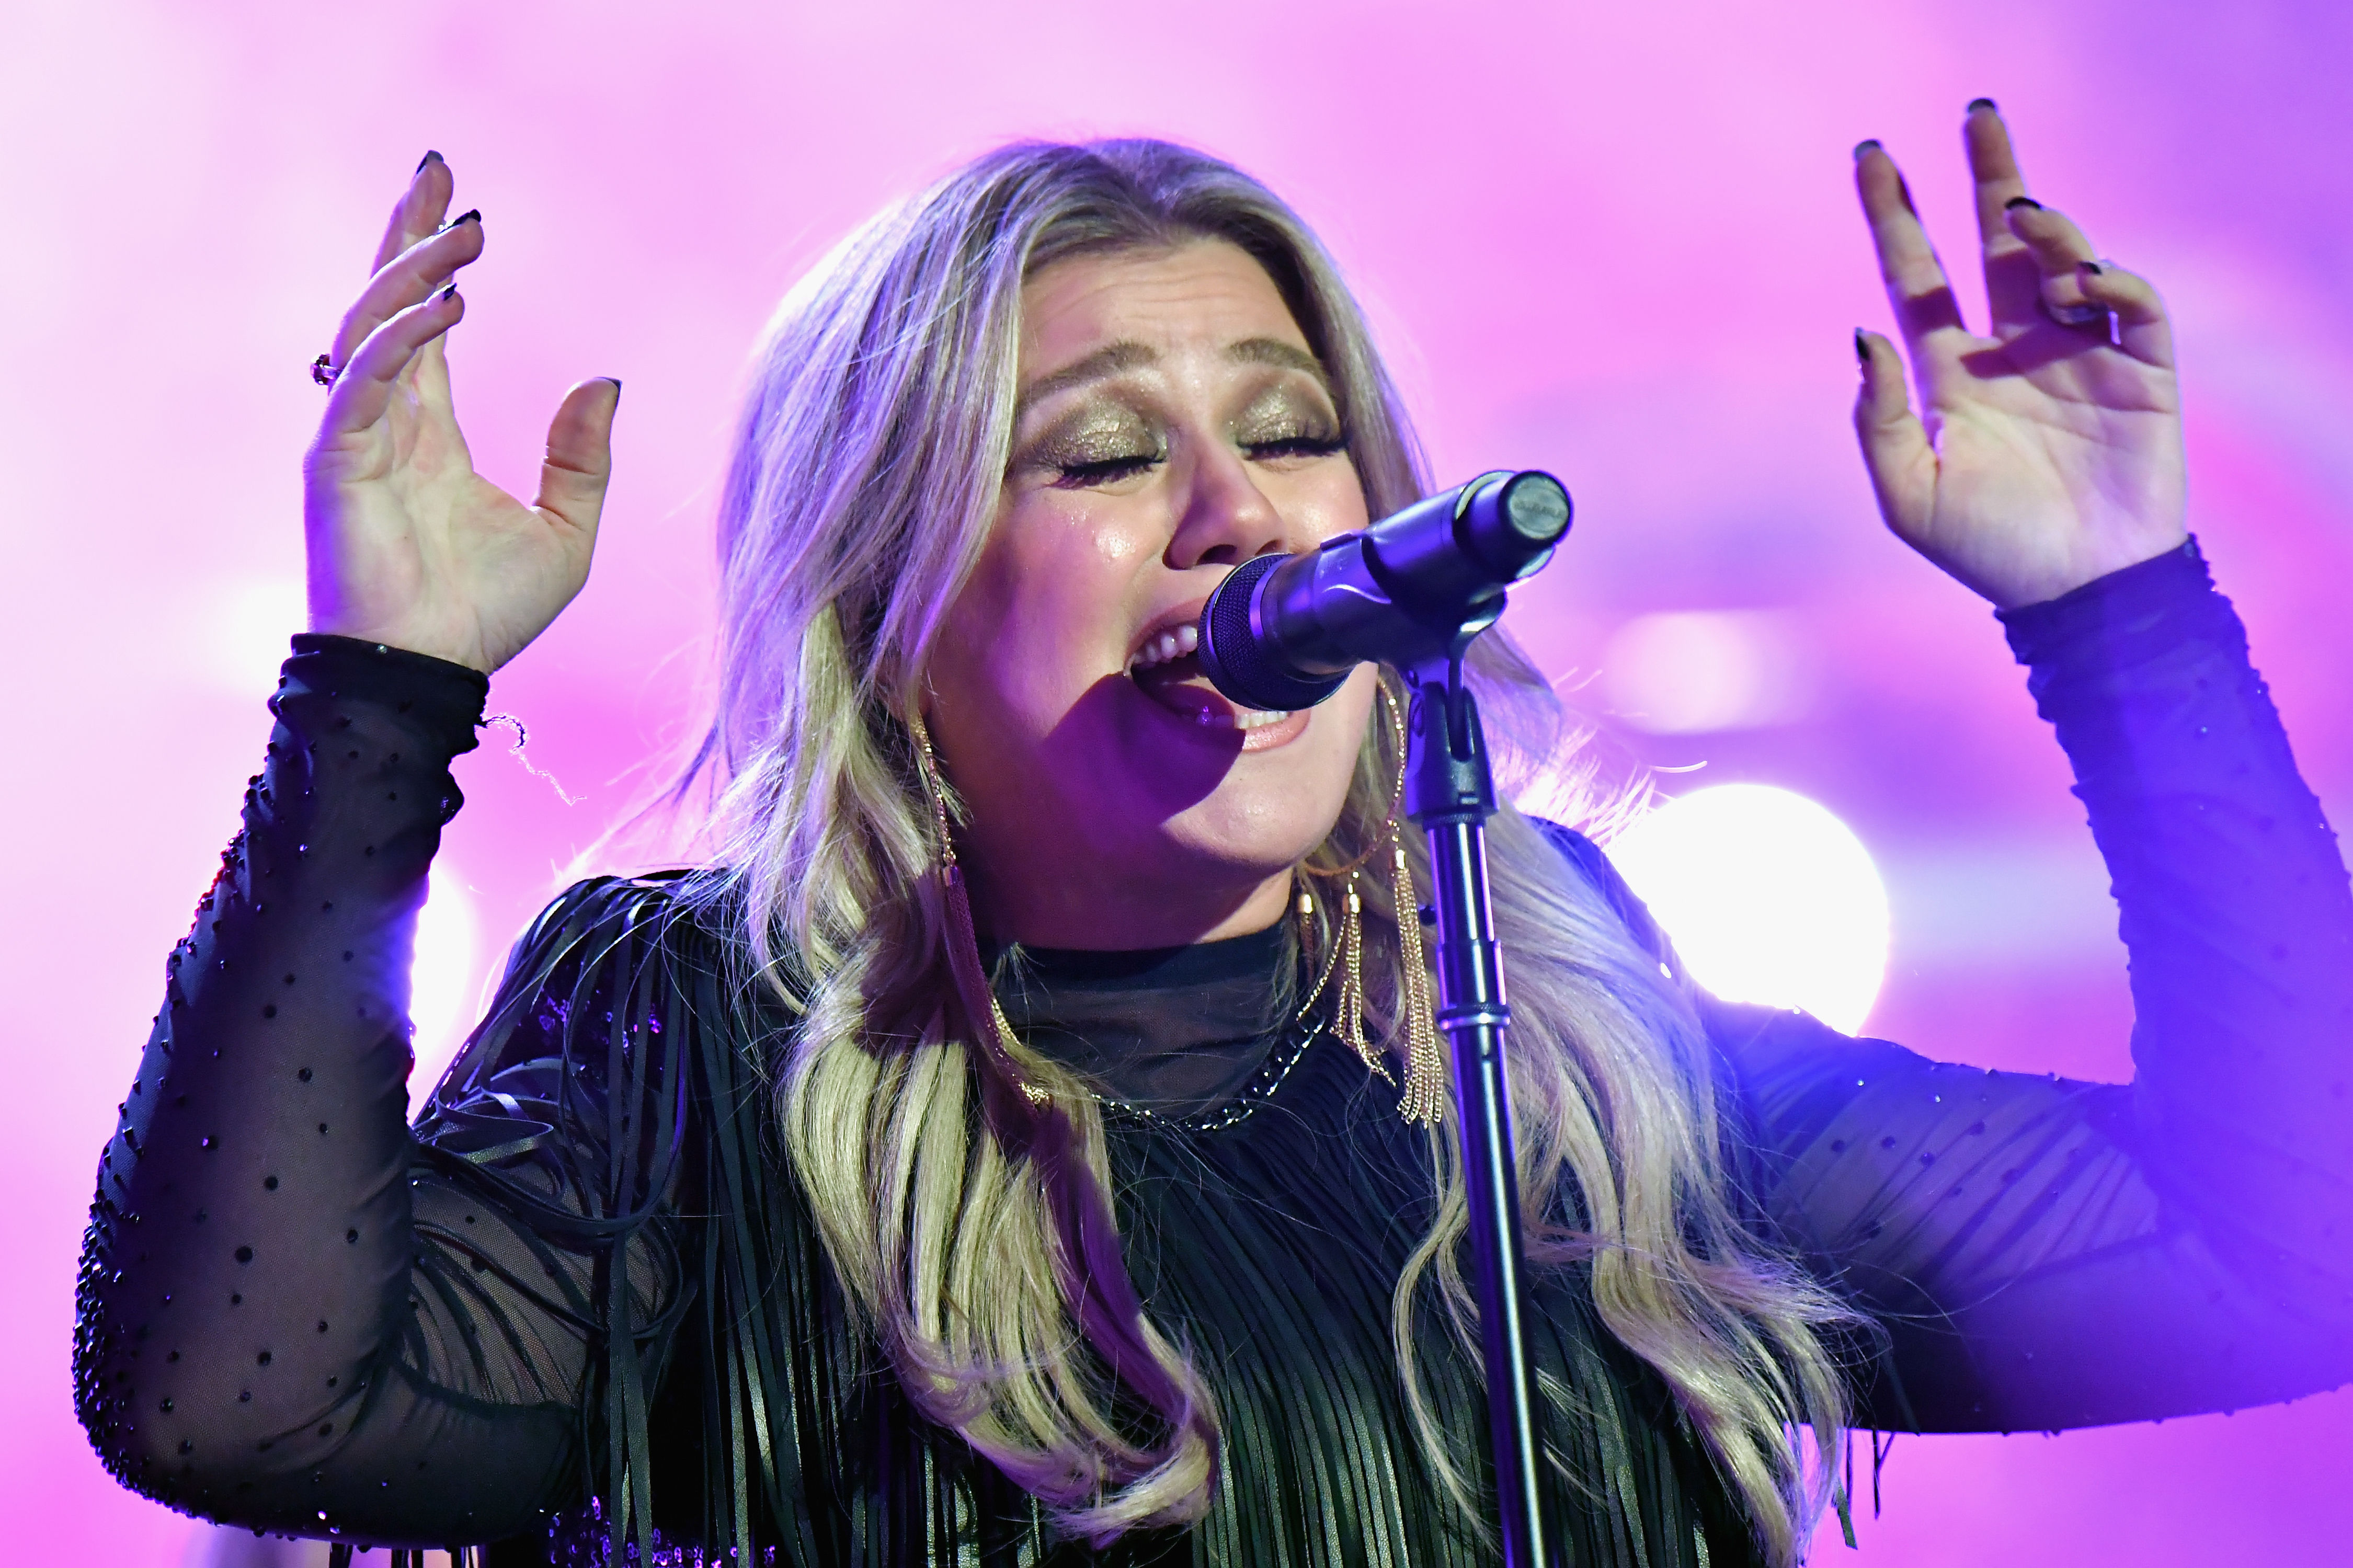 Kelly Clarkson Crashes Wedding with Special Musical Performance